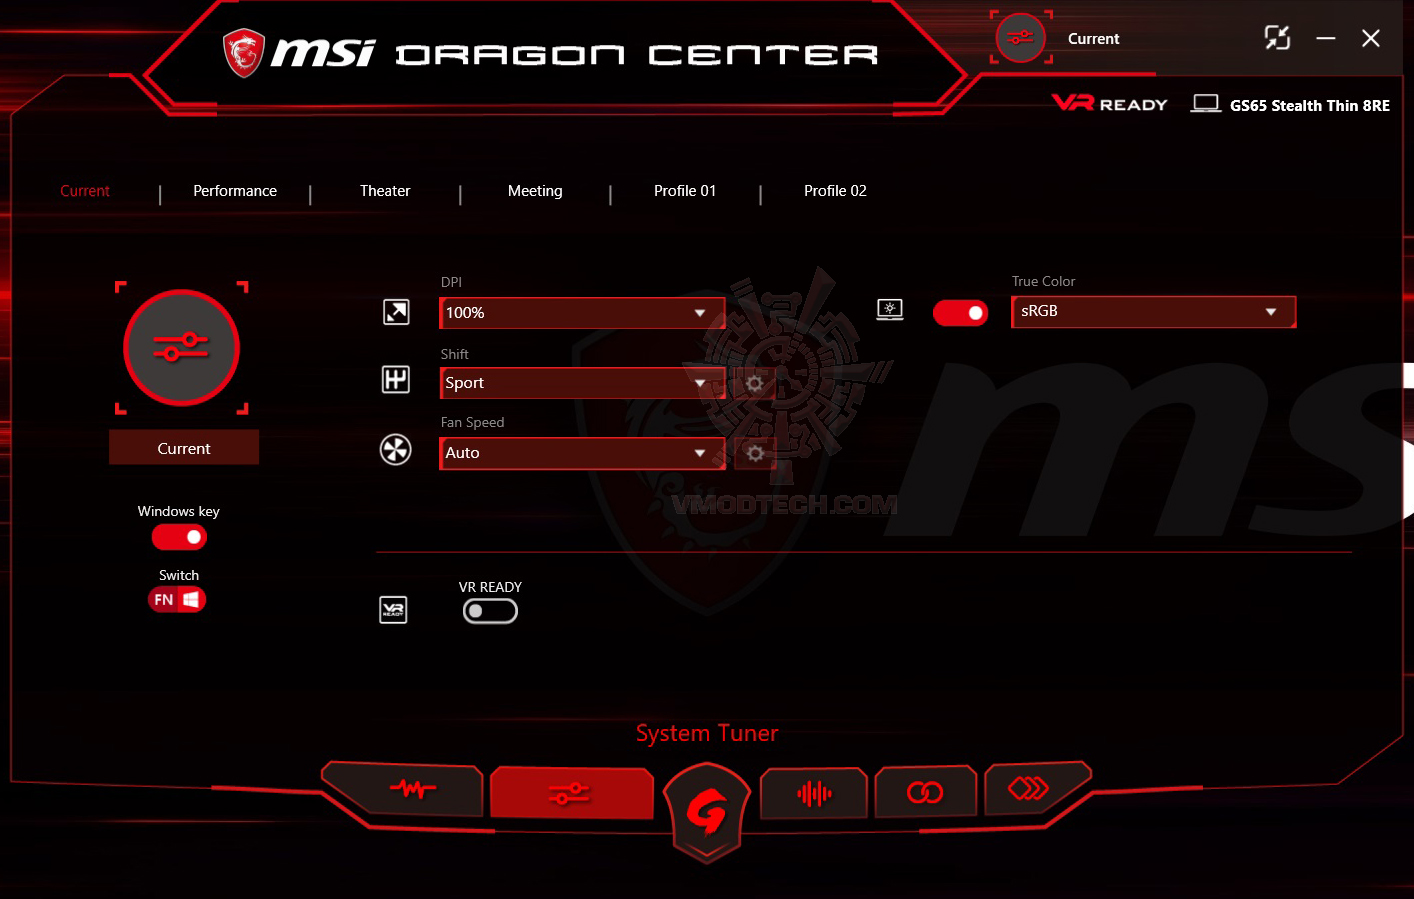 msi2 MSI GS65 Stealth Thin 8RE Review